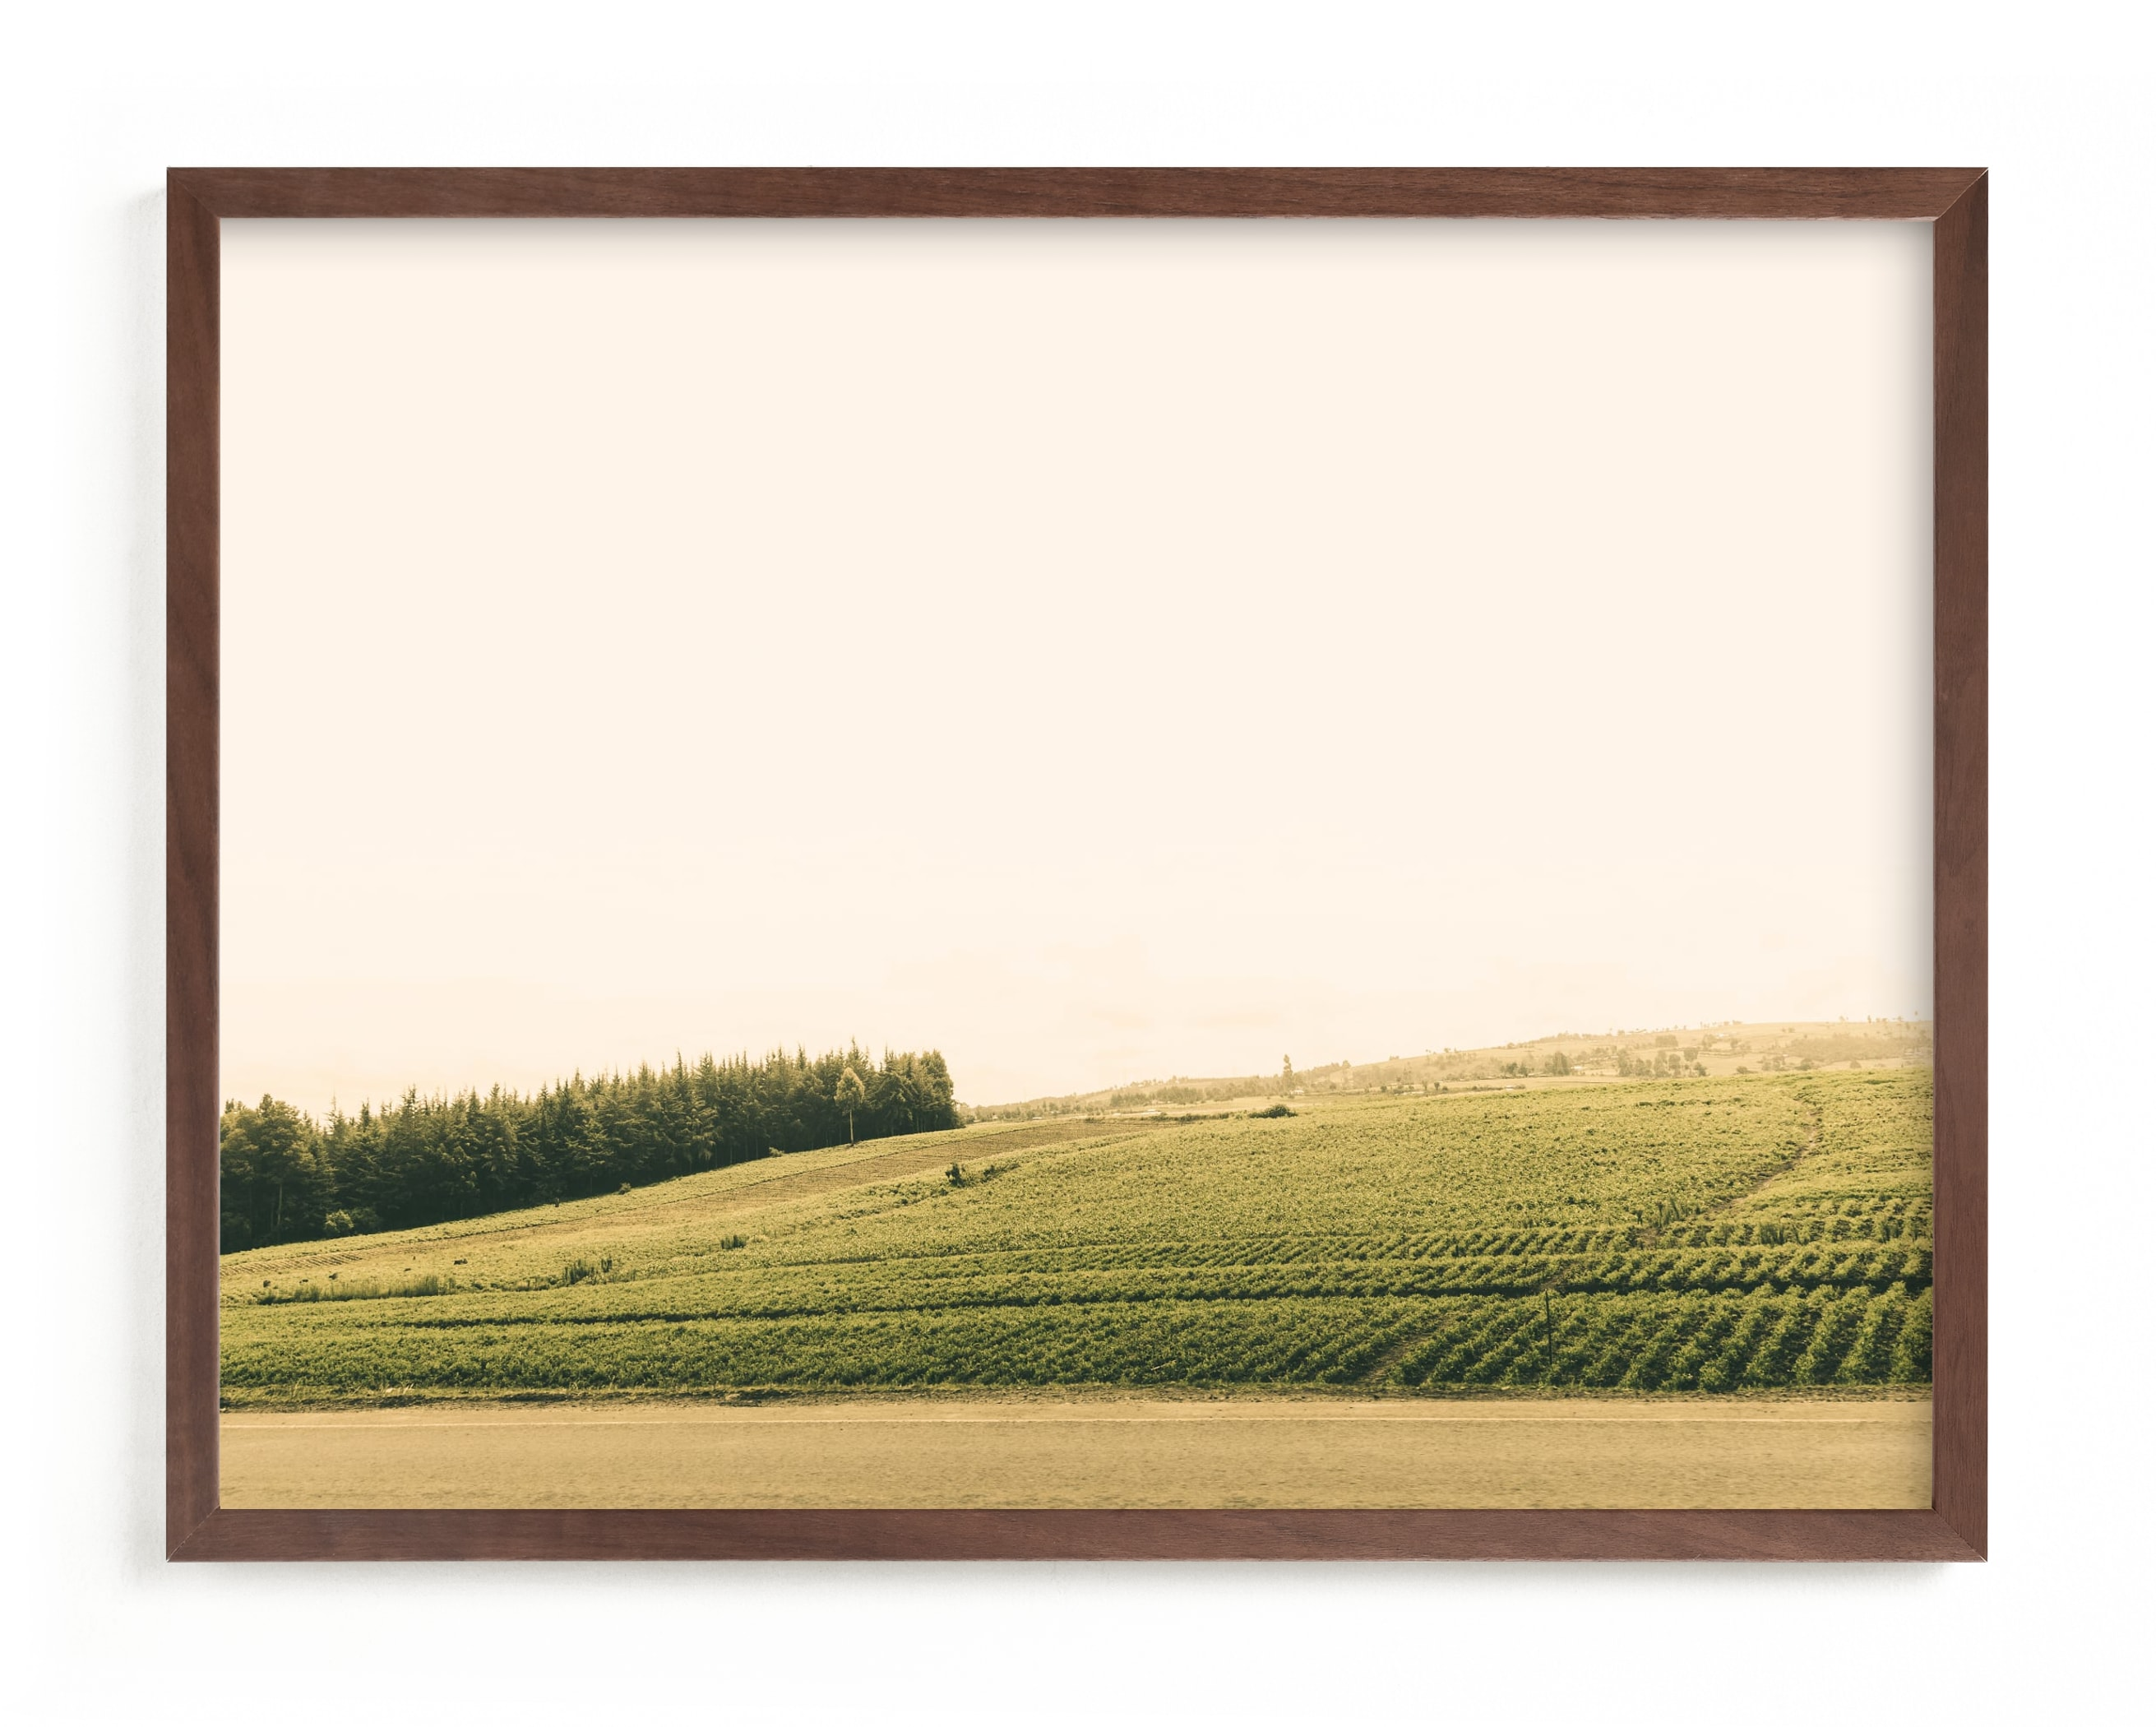 The Harvest Wall Art Print